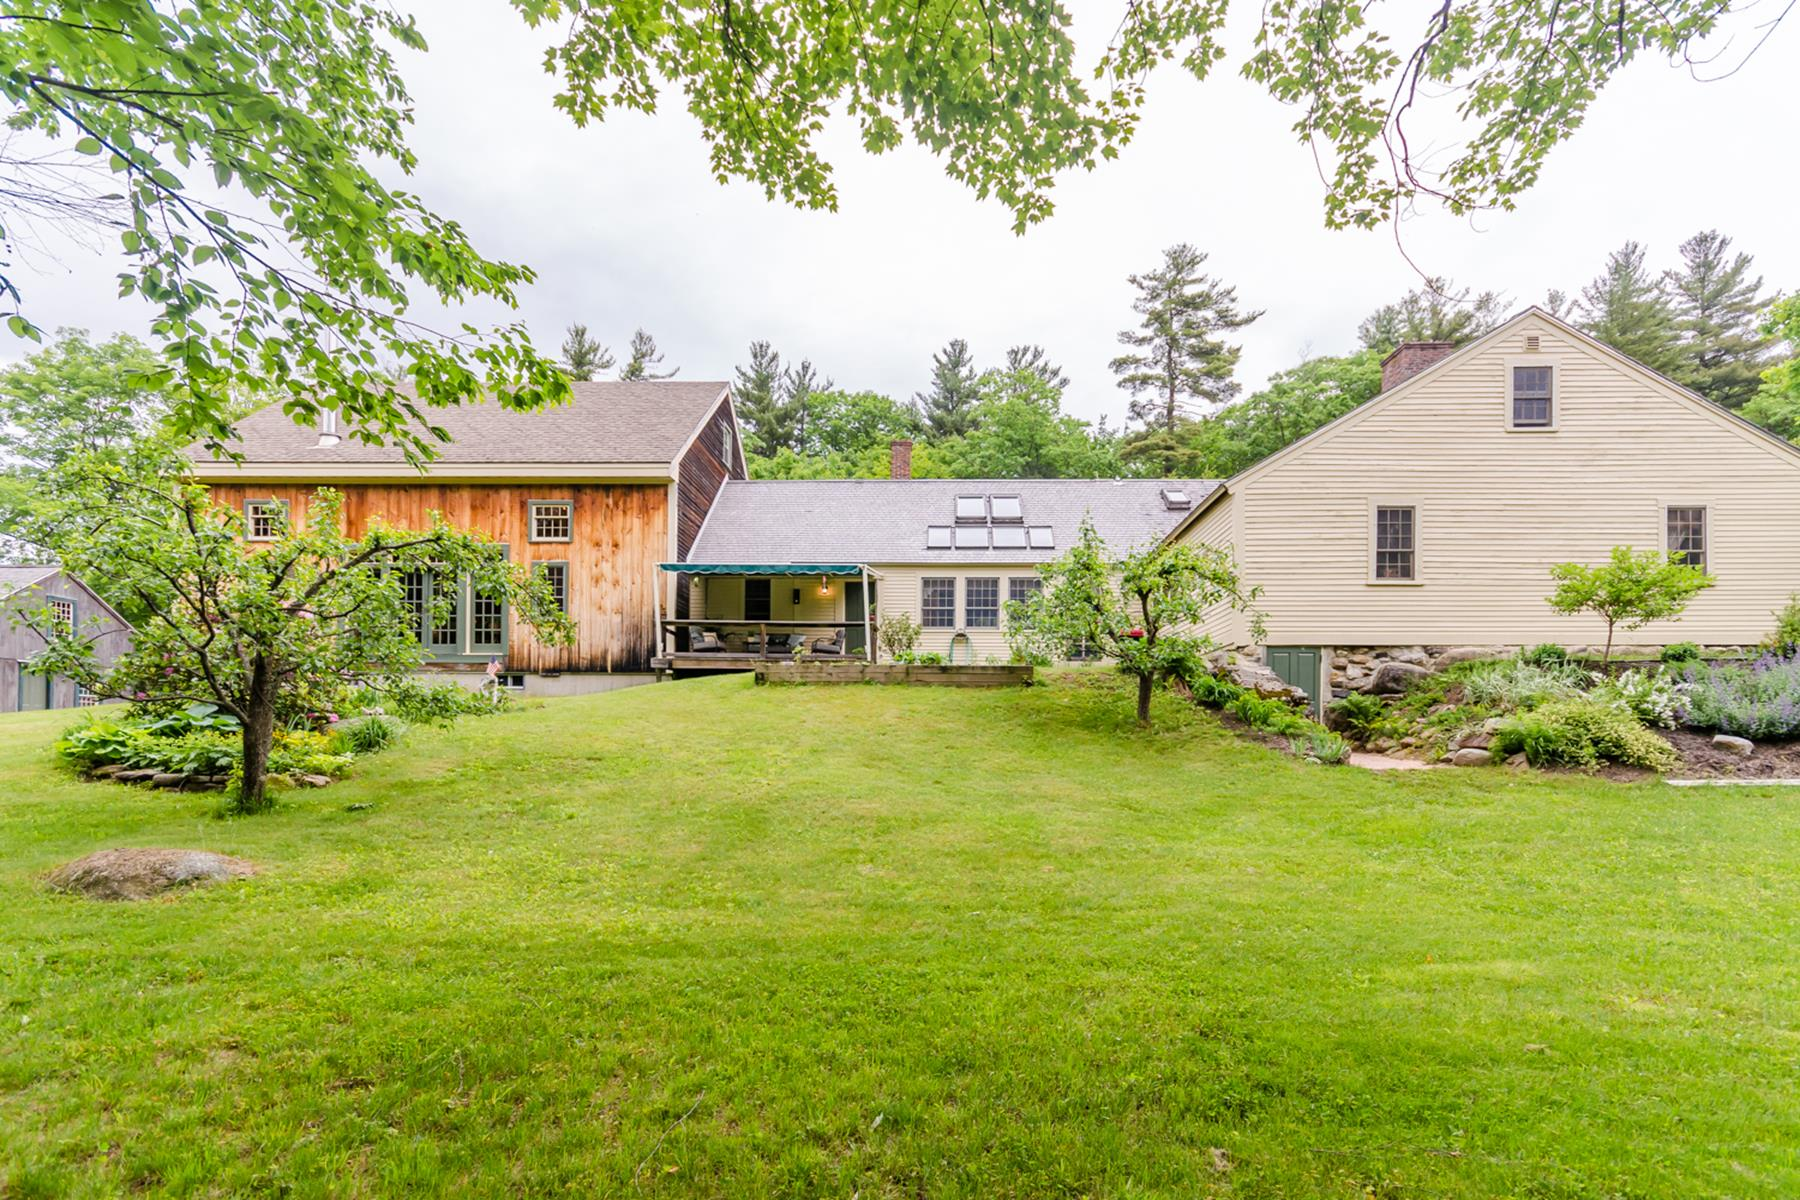 Single Family Home for Sale at 752 Murray Hill Road, Hill 752 Murray Hill Rd Hill, New Hampshire, 03243 United States